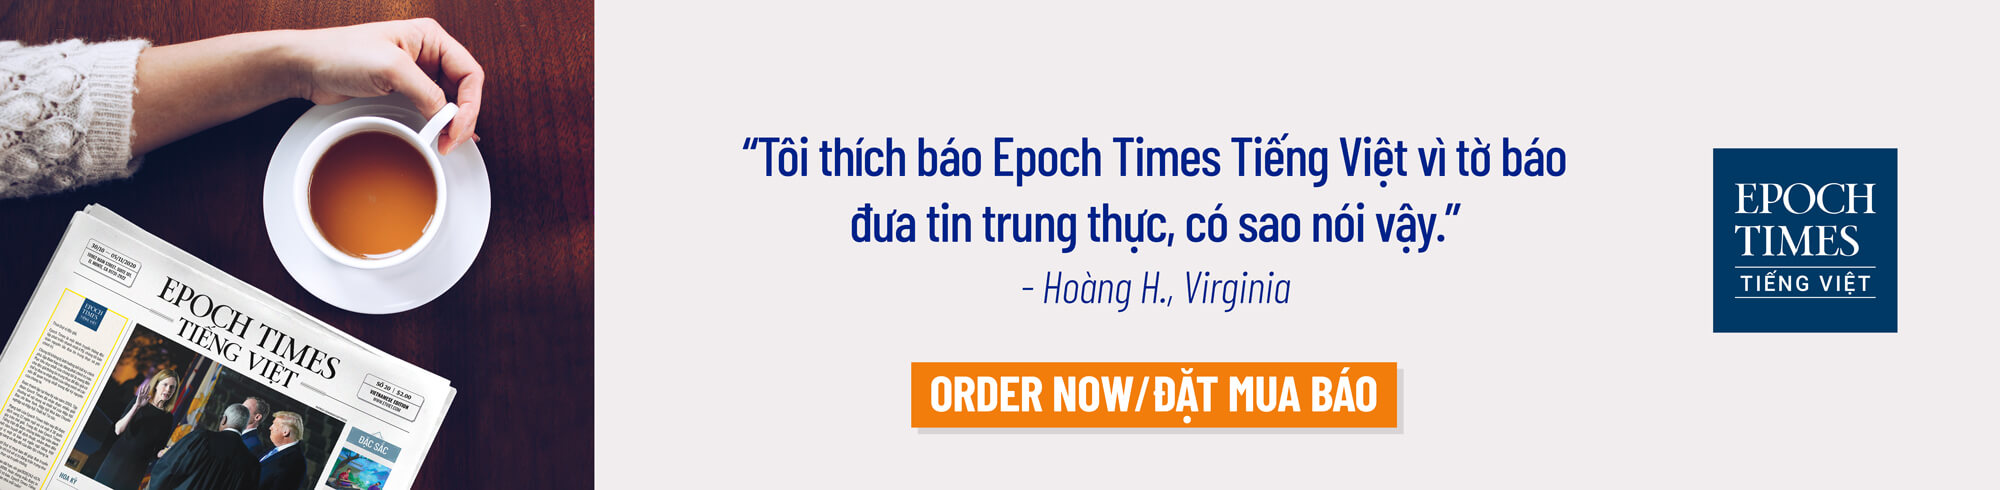 Subscribe Newspaper - Epoch Times Tiếng Việt